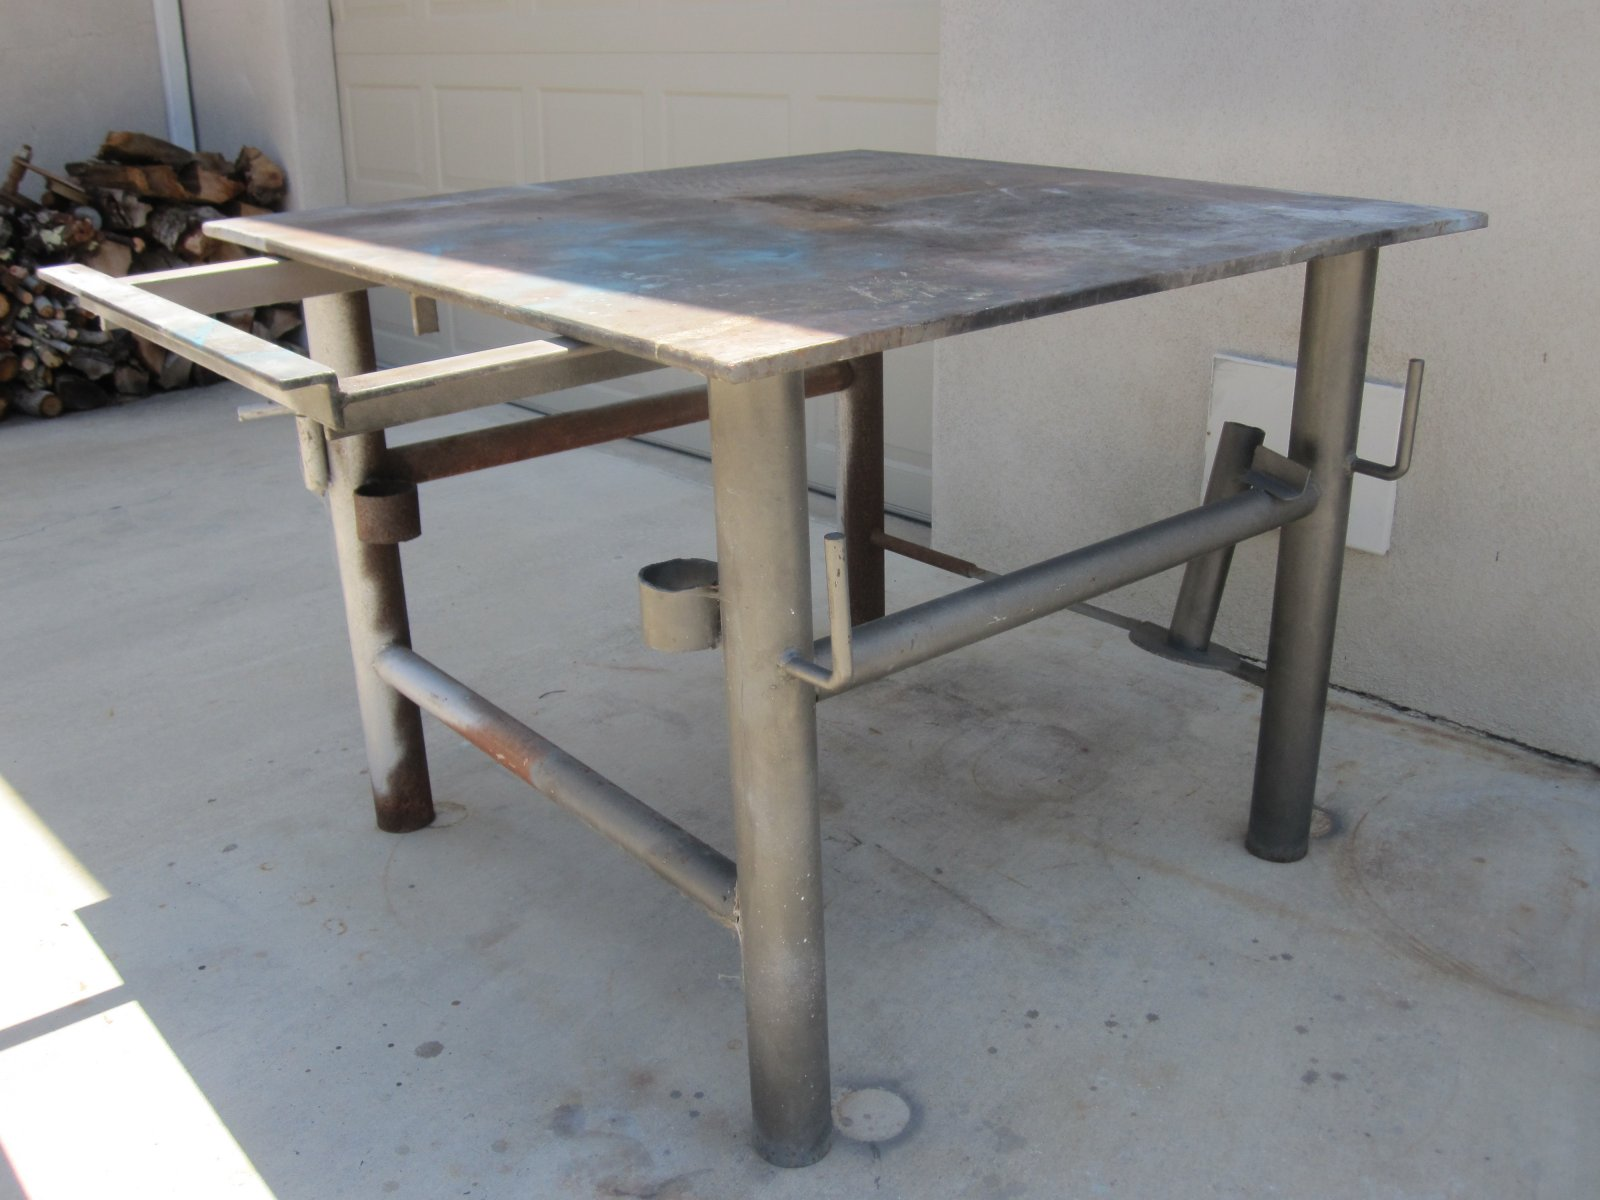 Welding Table For Sale >> Welding Table For Sale 400 Sold Sold Sold The H A M B